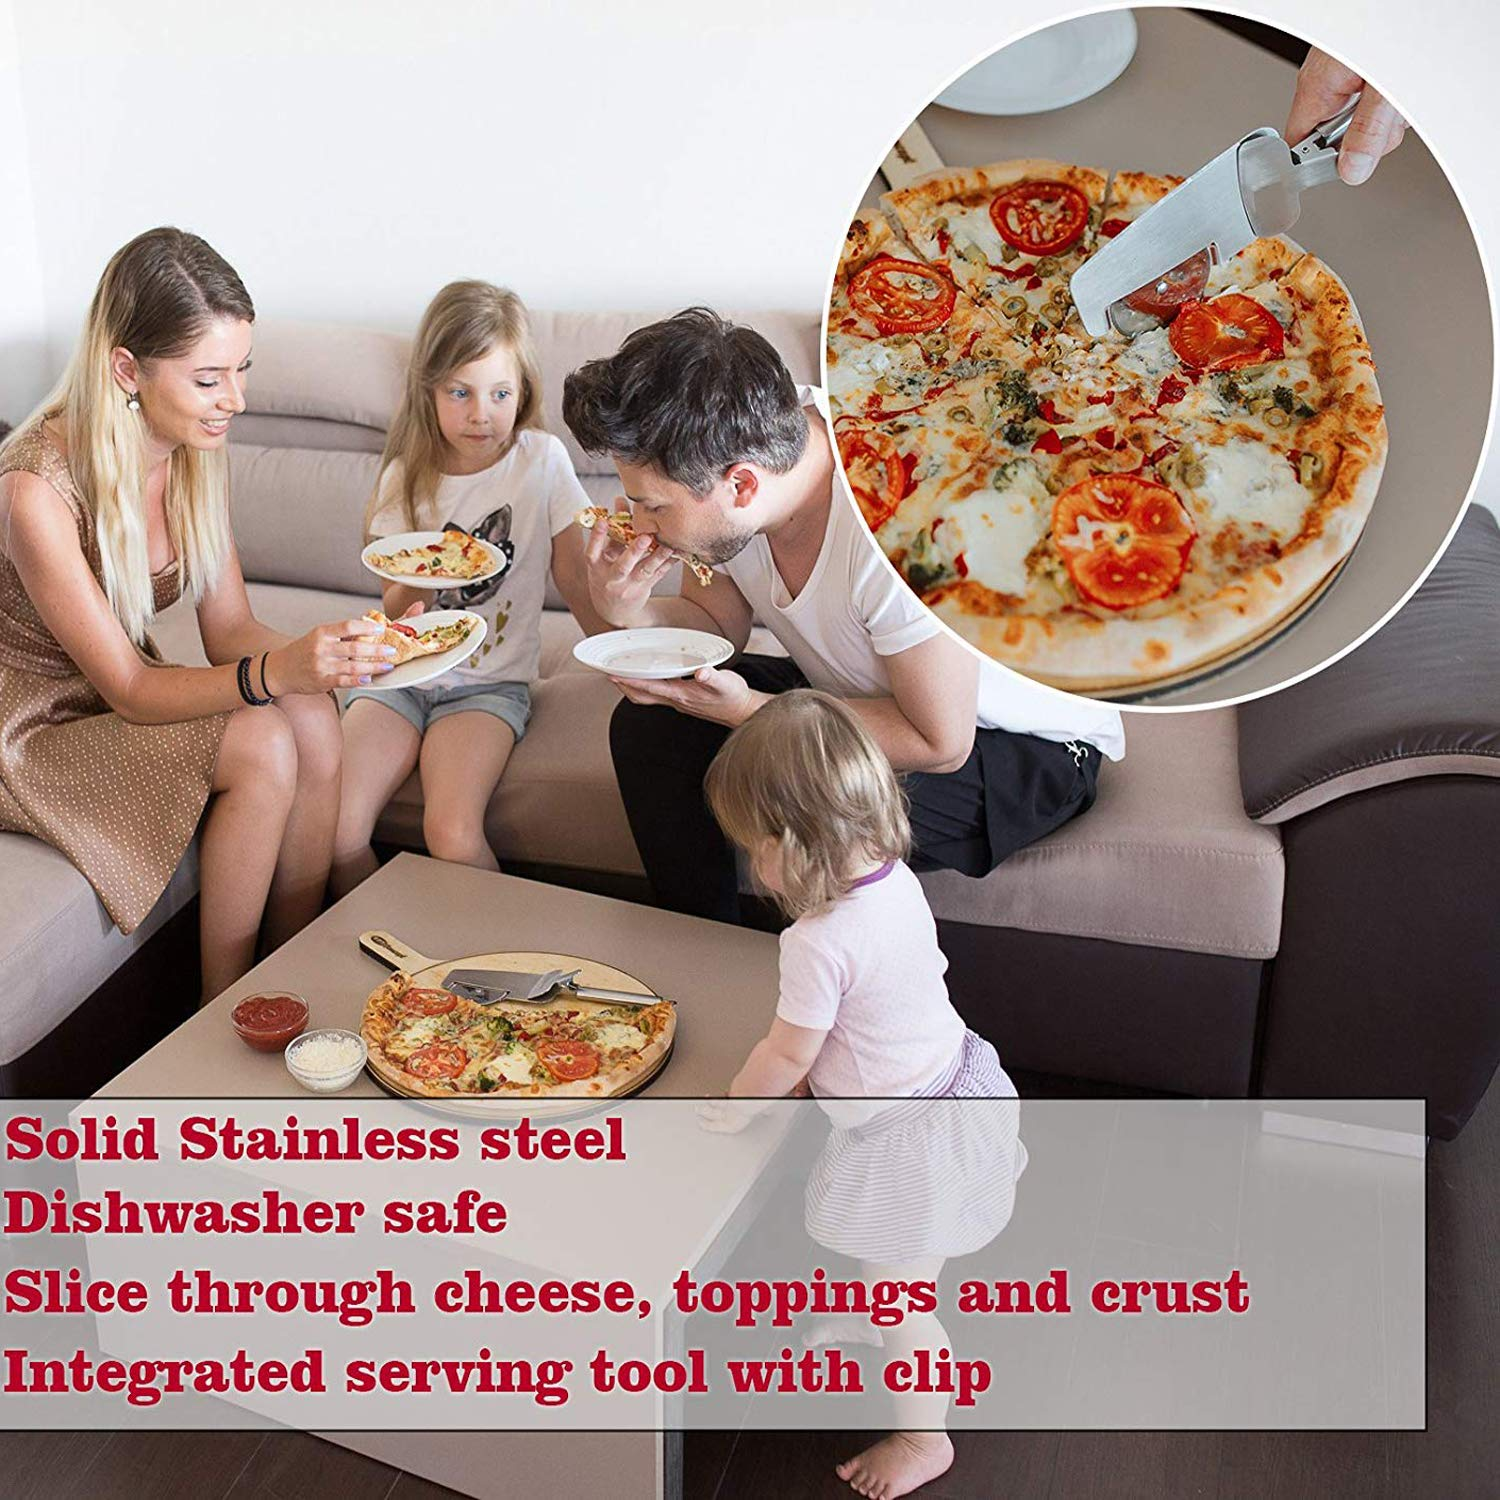 Buzzme 4 in 1 Pizza Cutter Wheel, Stainless Steel Pizza Shovel Slicer with Sharp Blade Dishwasher Safe Easy to Clean